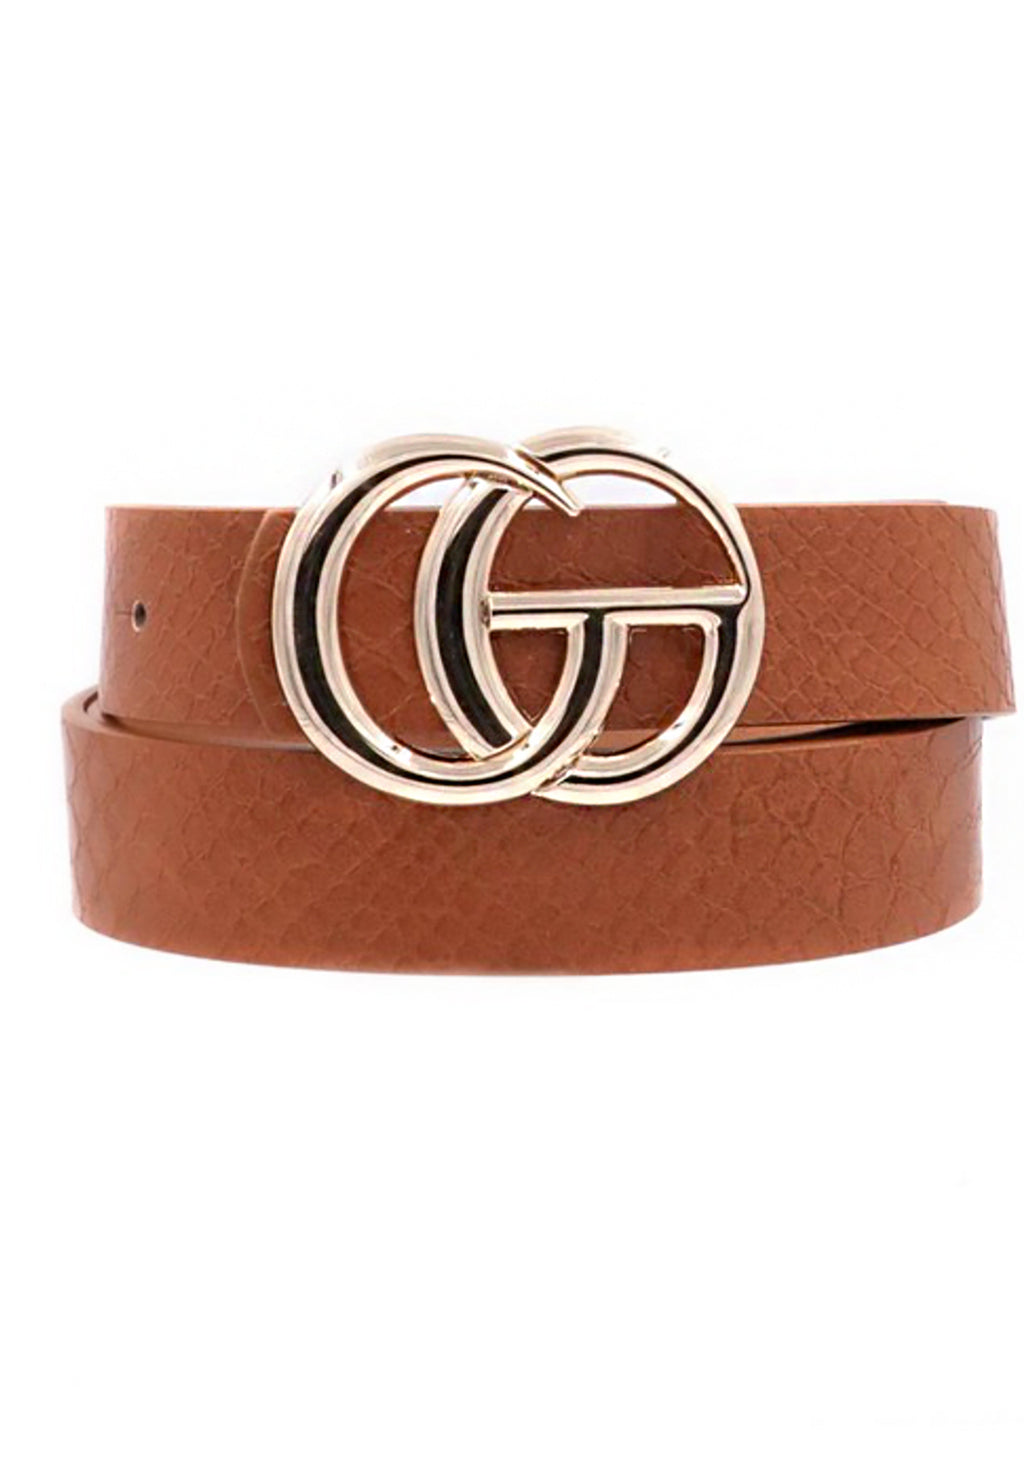 Brown Croc Pattern GG Belt With Gold Buckle - Kendry Collection Boutique